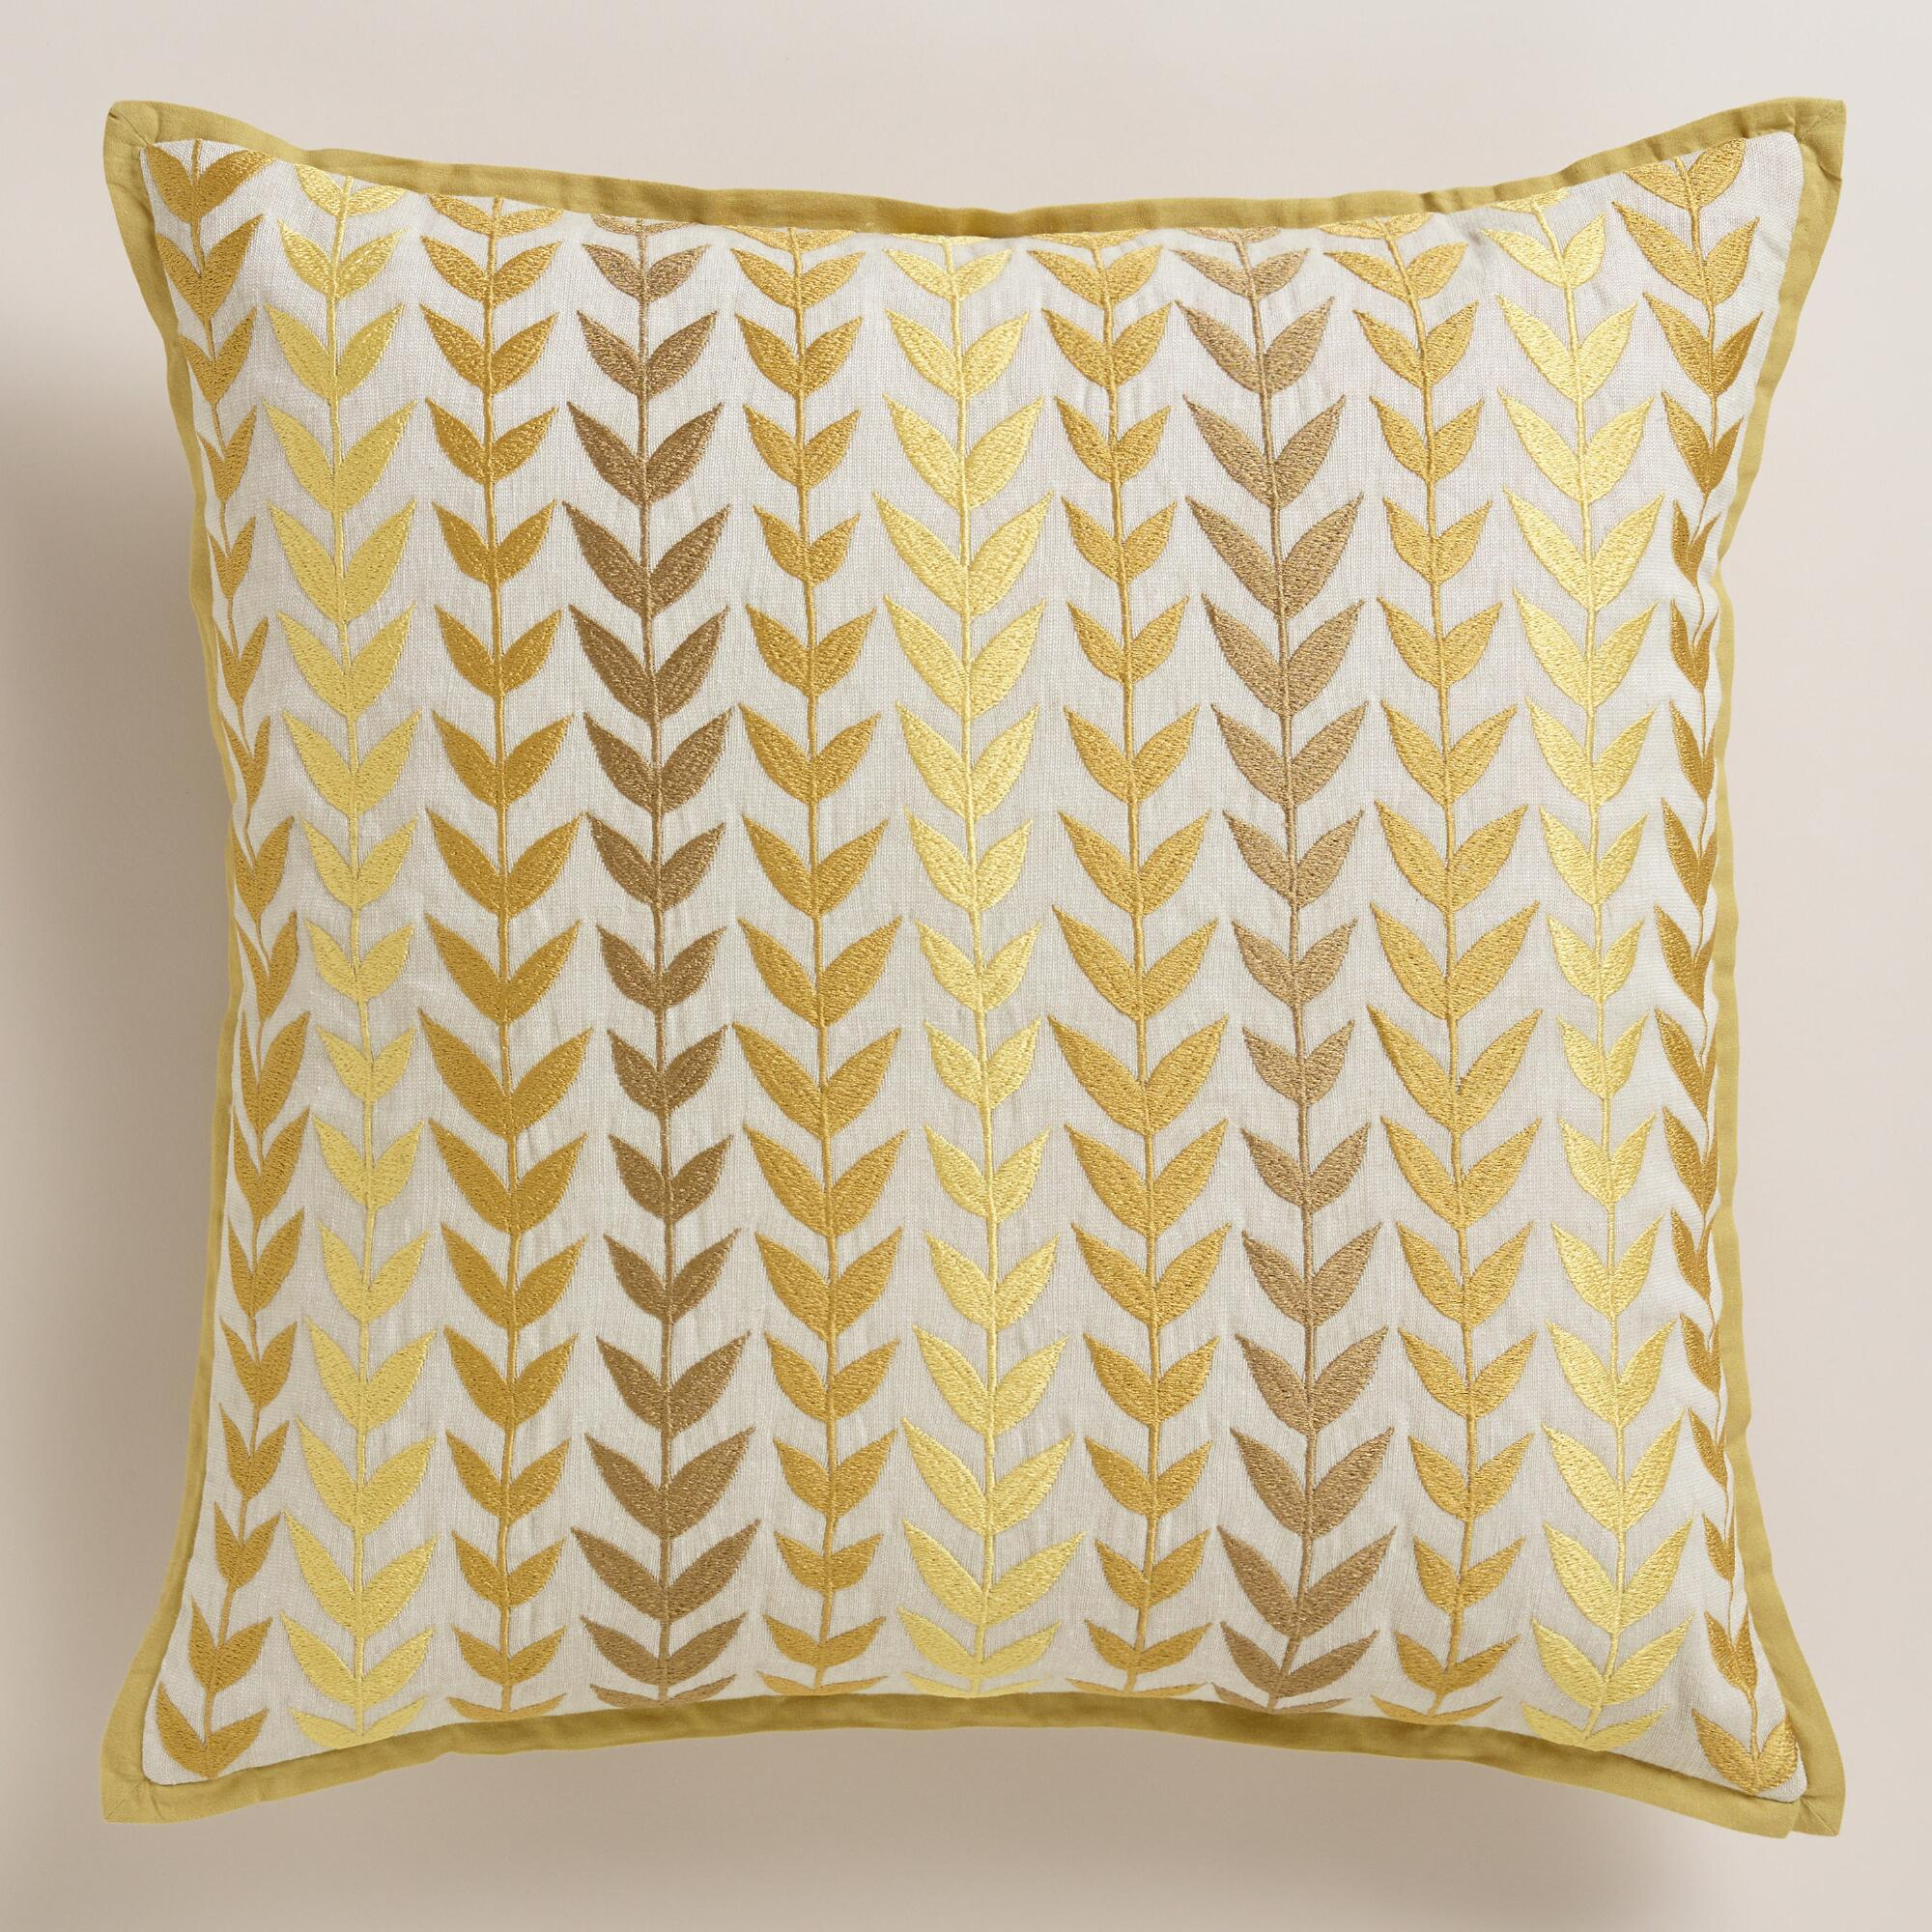 Throw Pillows Groupon : Yellow and Gray Geometric Throw Pillow World Market